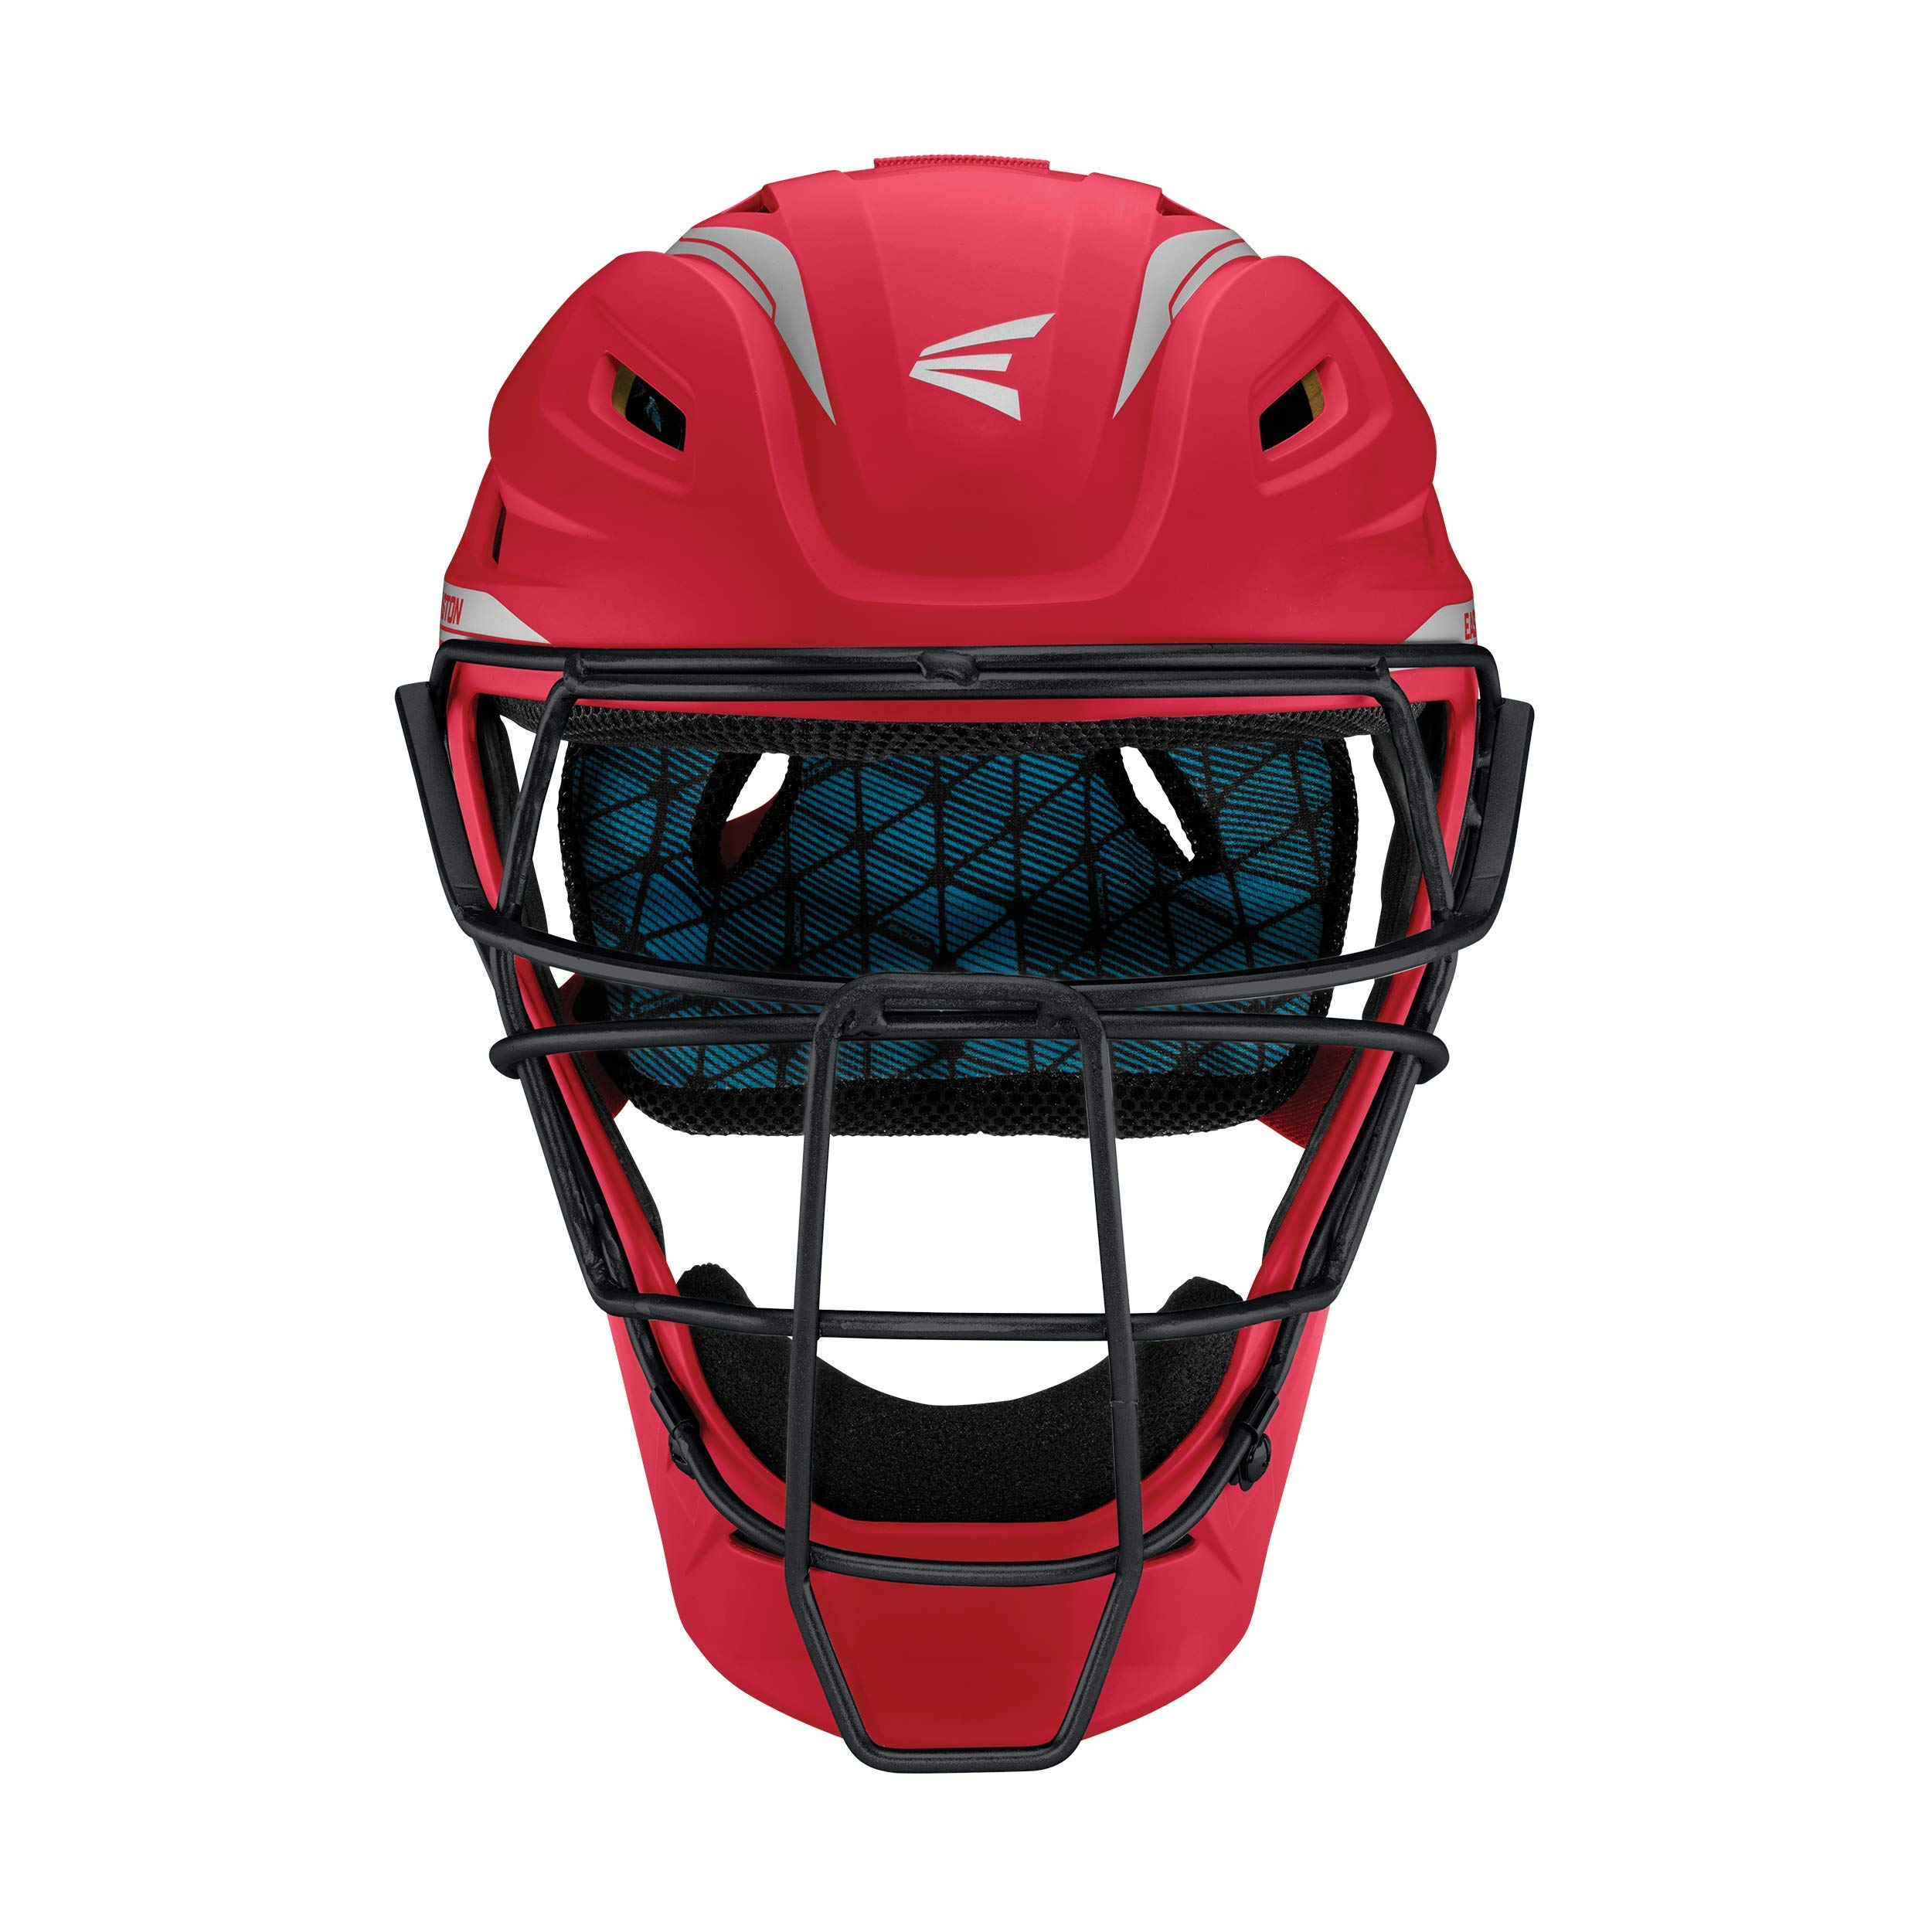 Easton Pro x Catchers Helmet Pro-X C-Helmet Rd/Sl S, Red/ Silver, Small by Easton